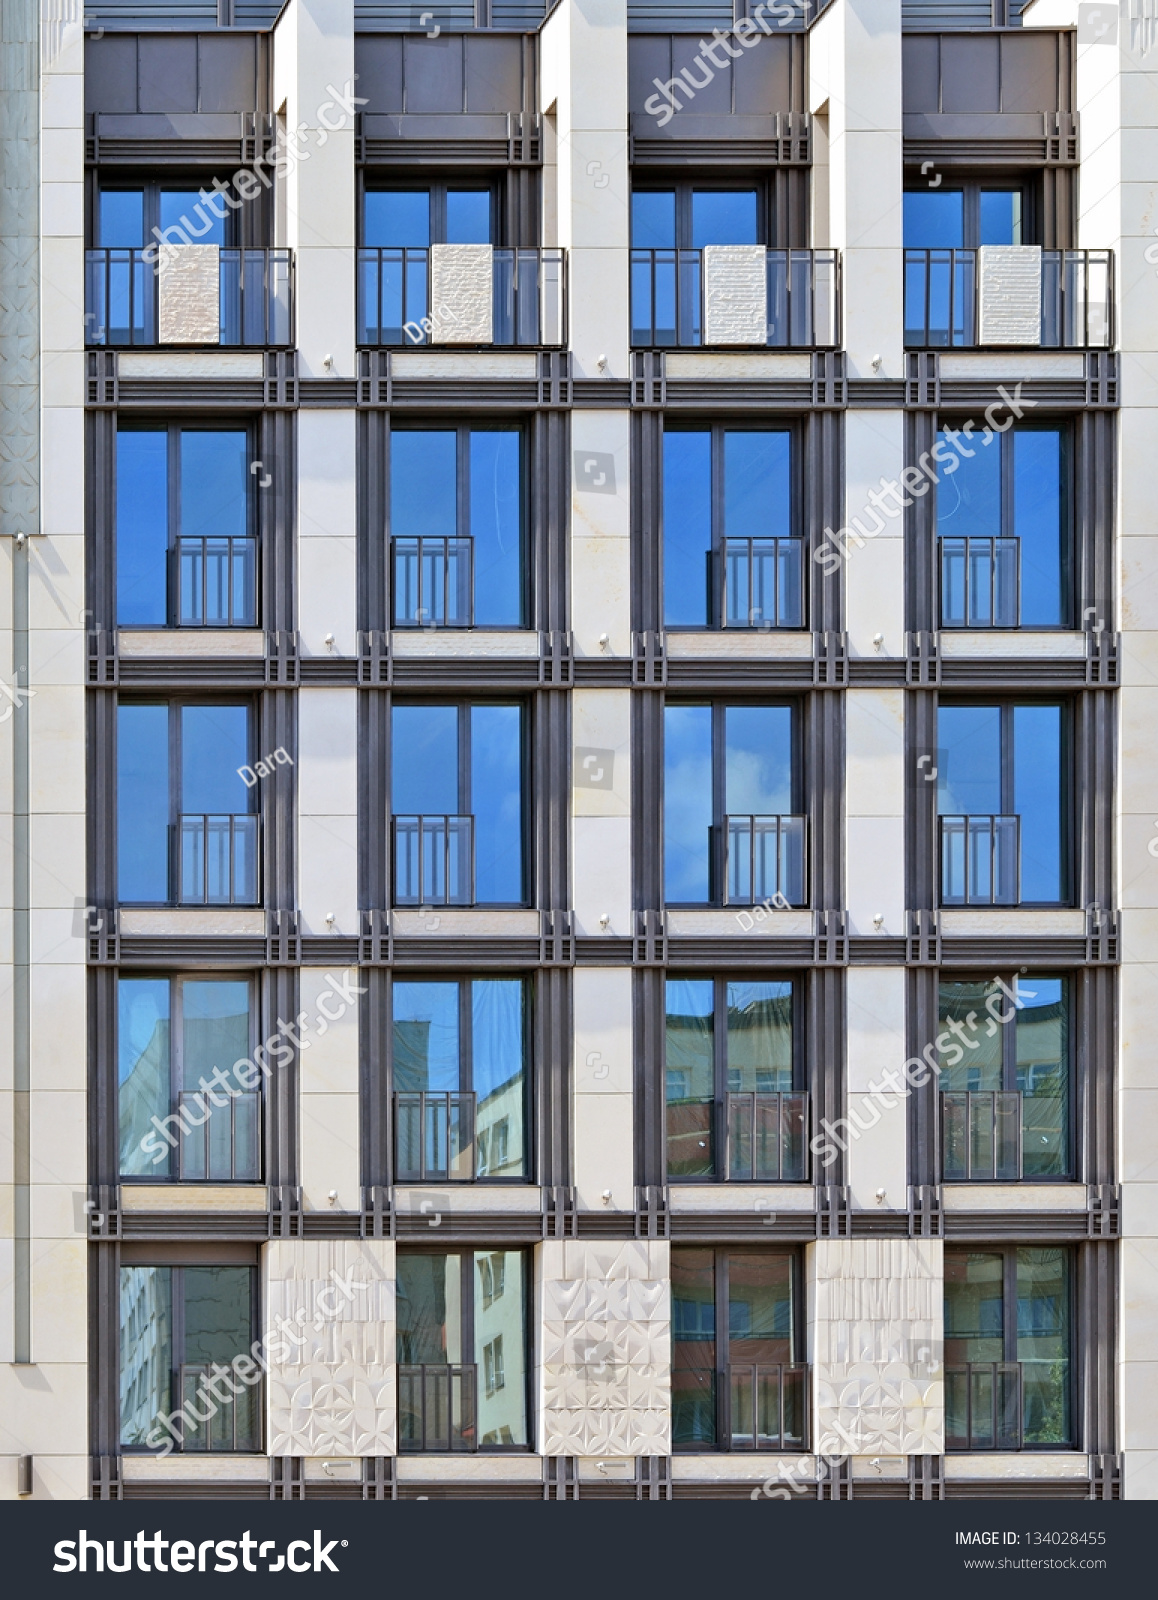 Residential New Building Facade Stock Photo 134028455: building facade pictures